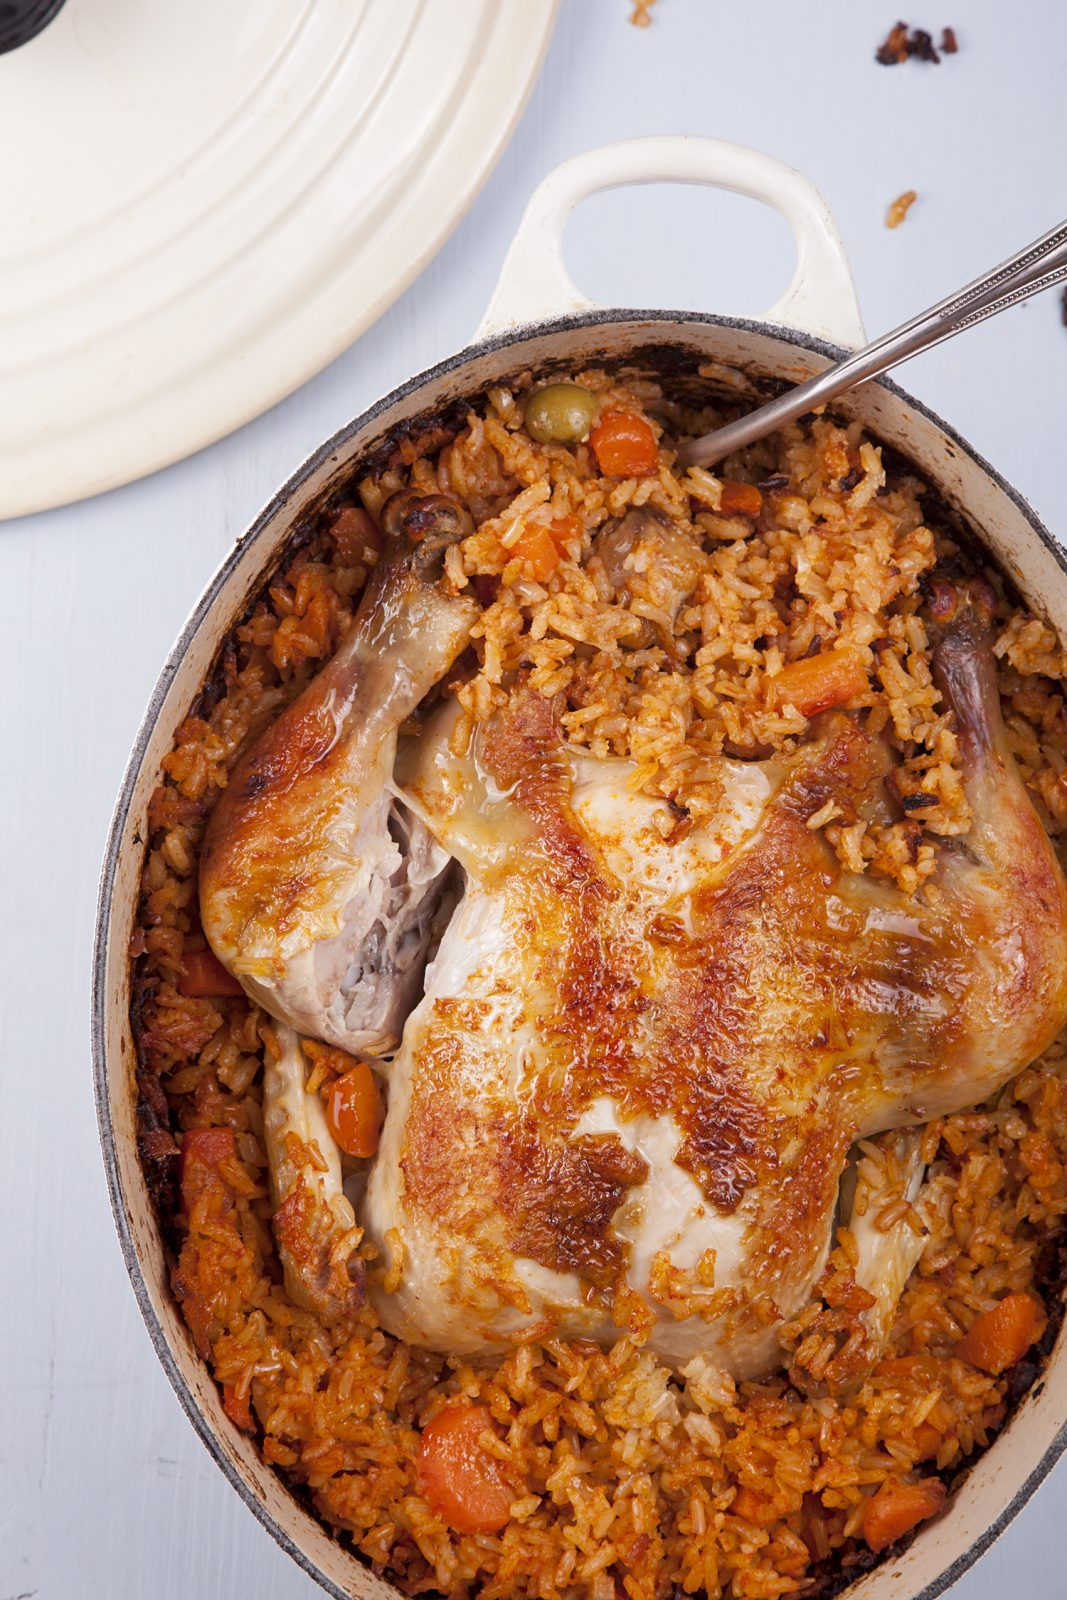 Chicken Baked in Rice - Delicious Gluten Free Recipe